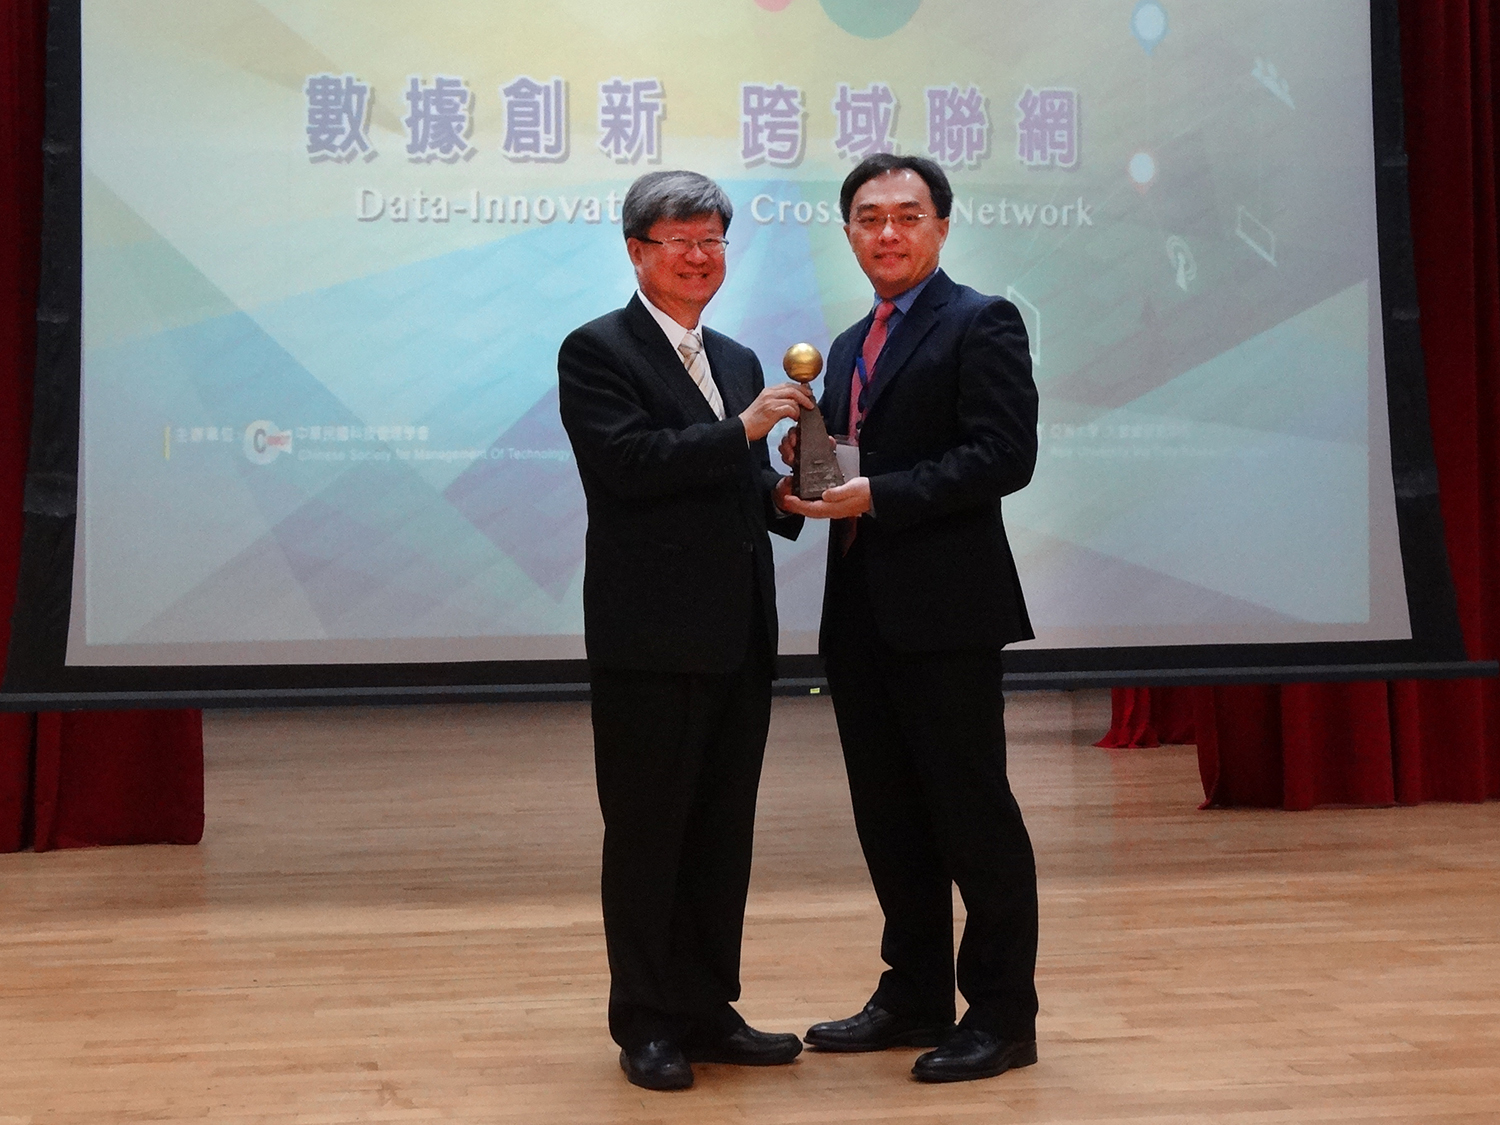 The Optimal Decision Systems Research Team led by Assistant Professor Shao-Jen Weng of the Tunghai Department of Industrial Engineering and Enterprise Information received one of the awards.